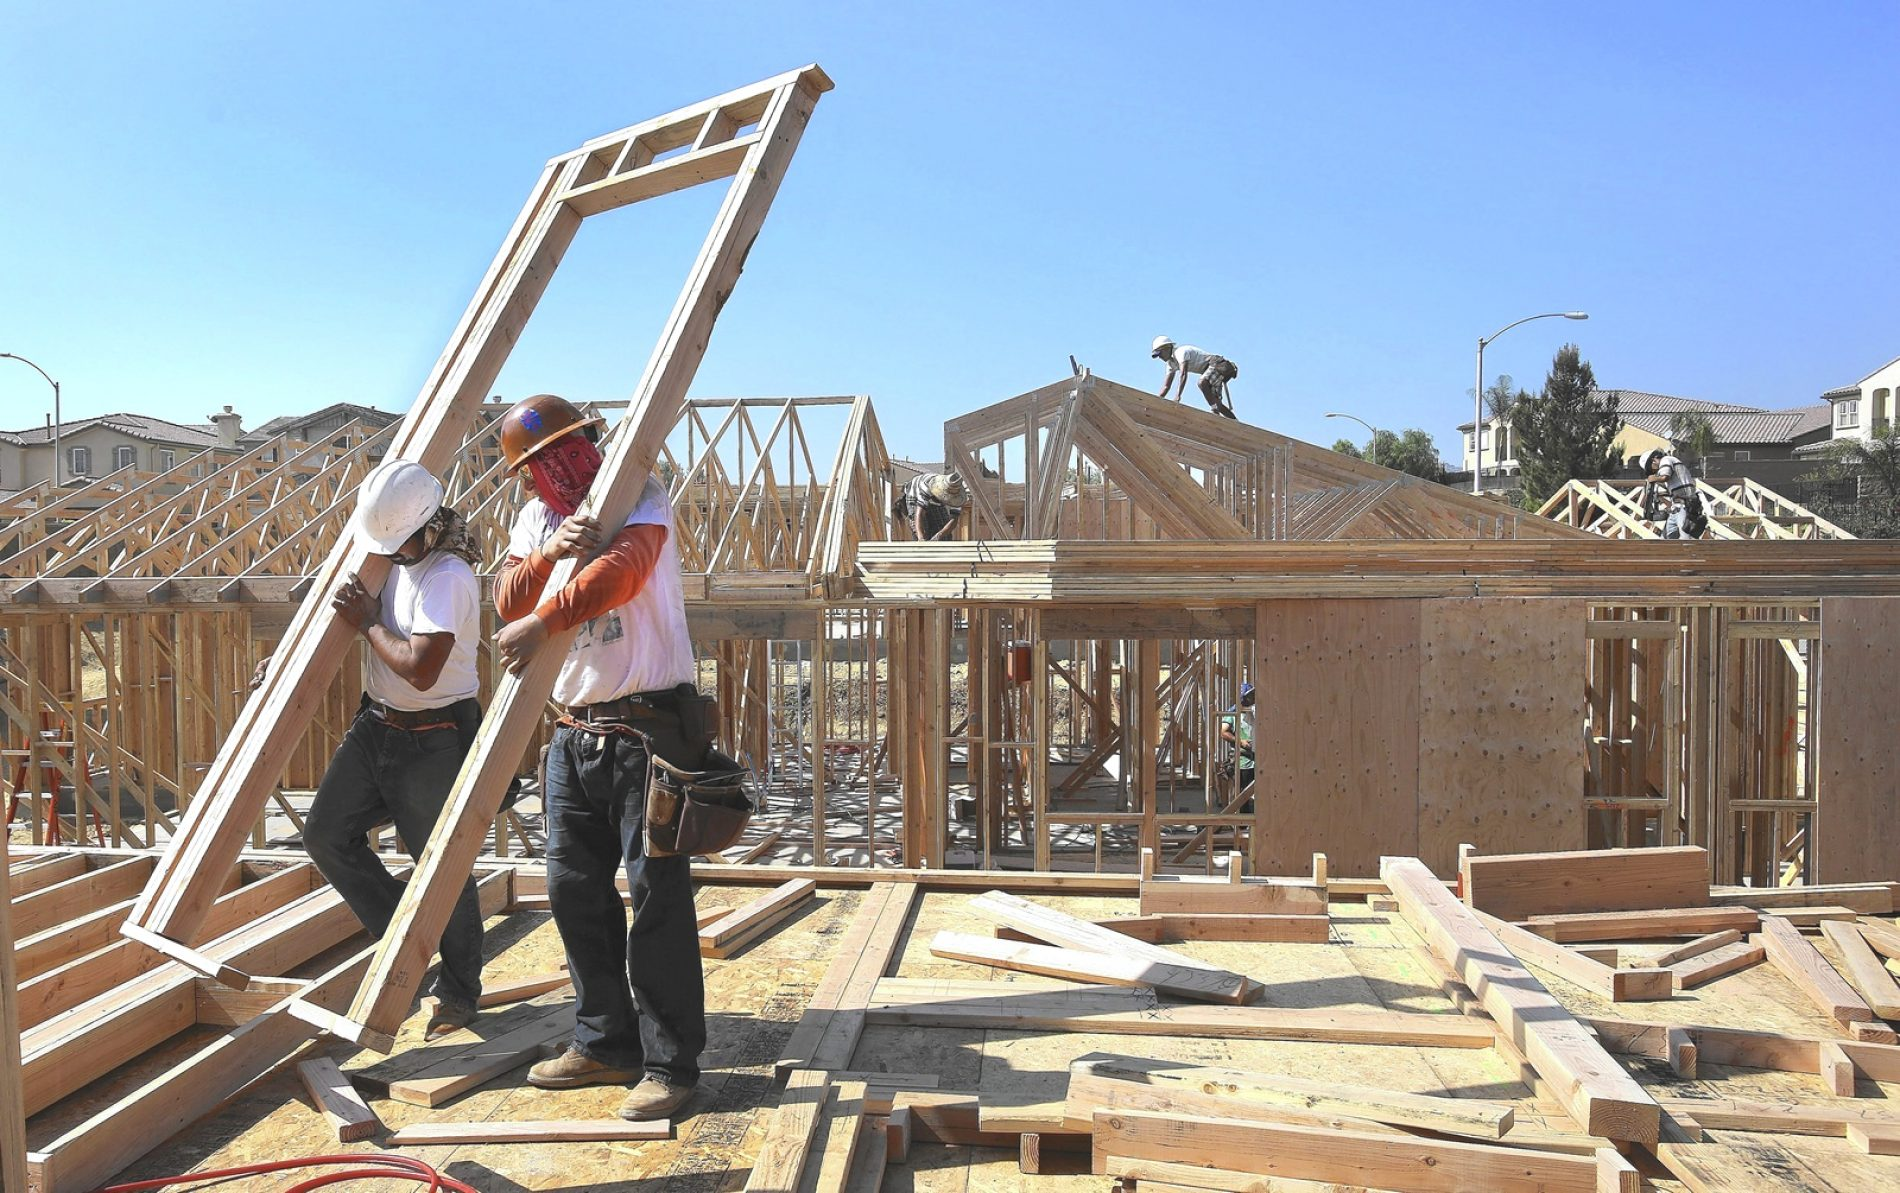 Building Activity Steps Up in the OC